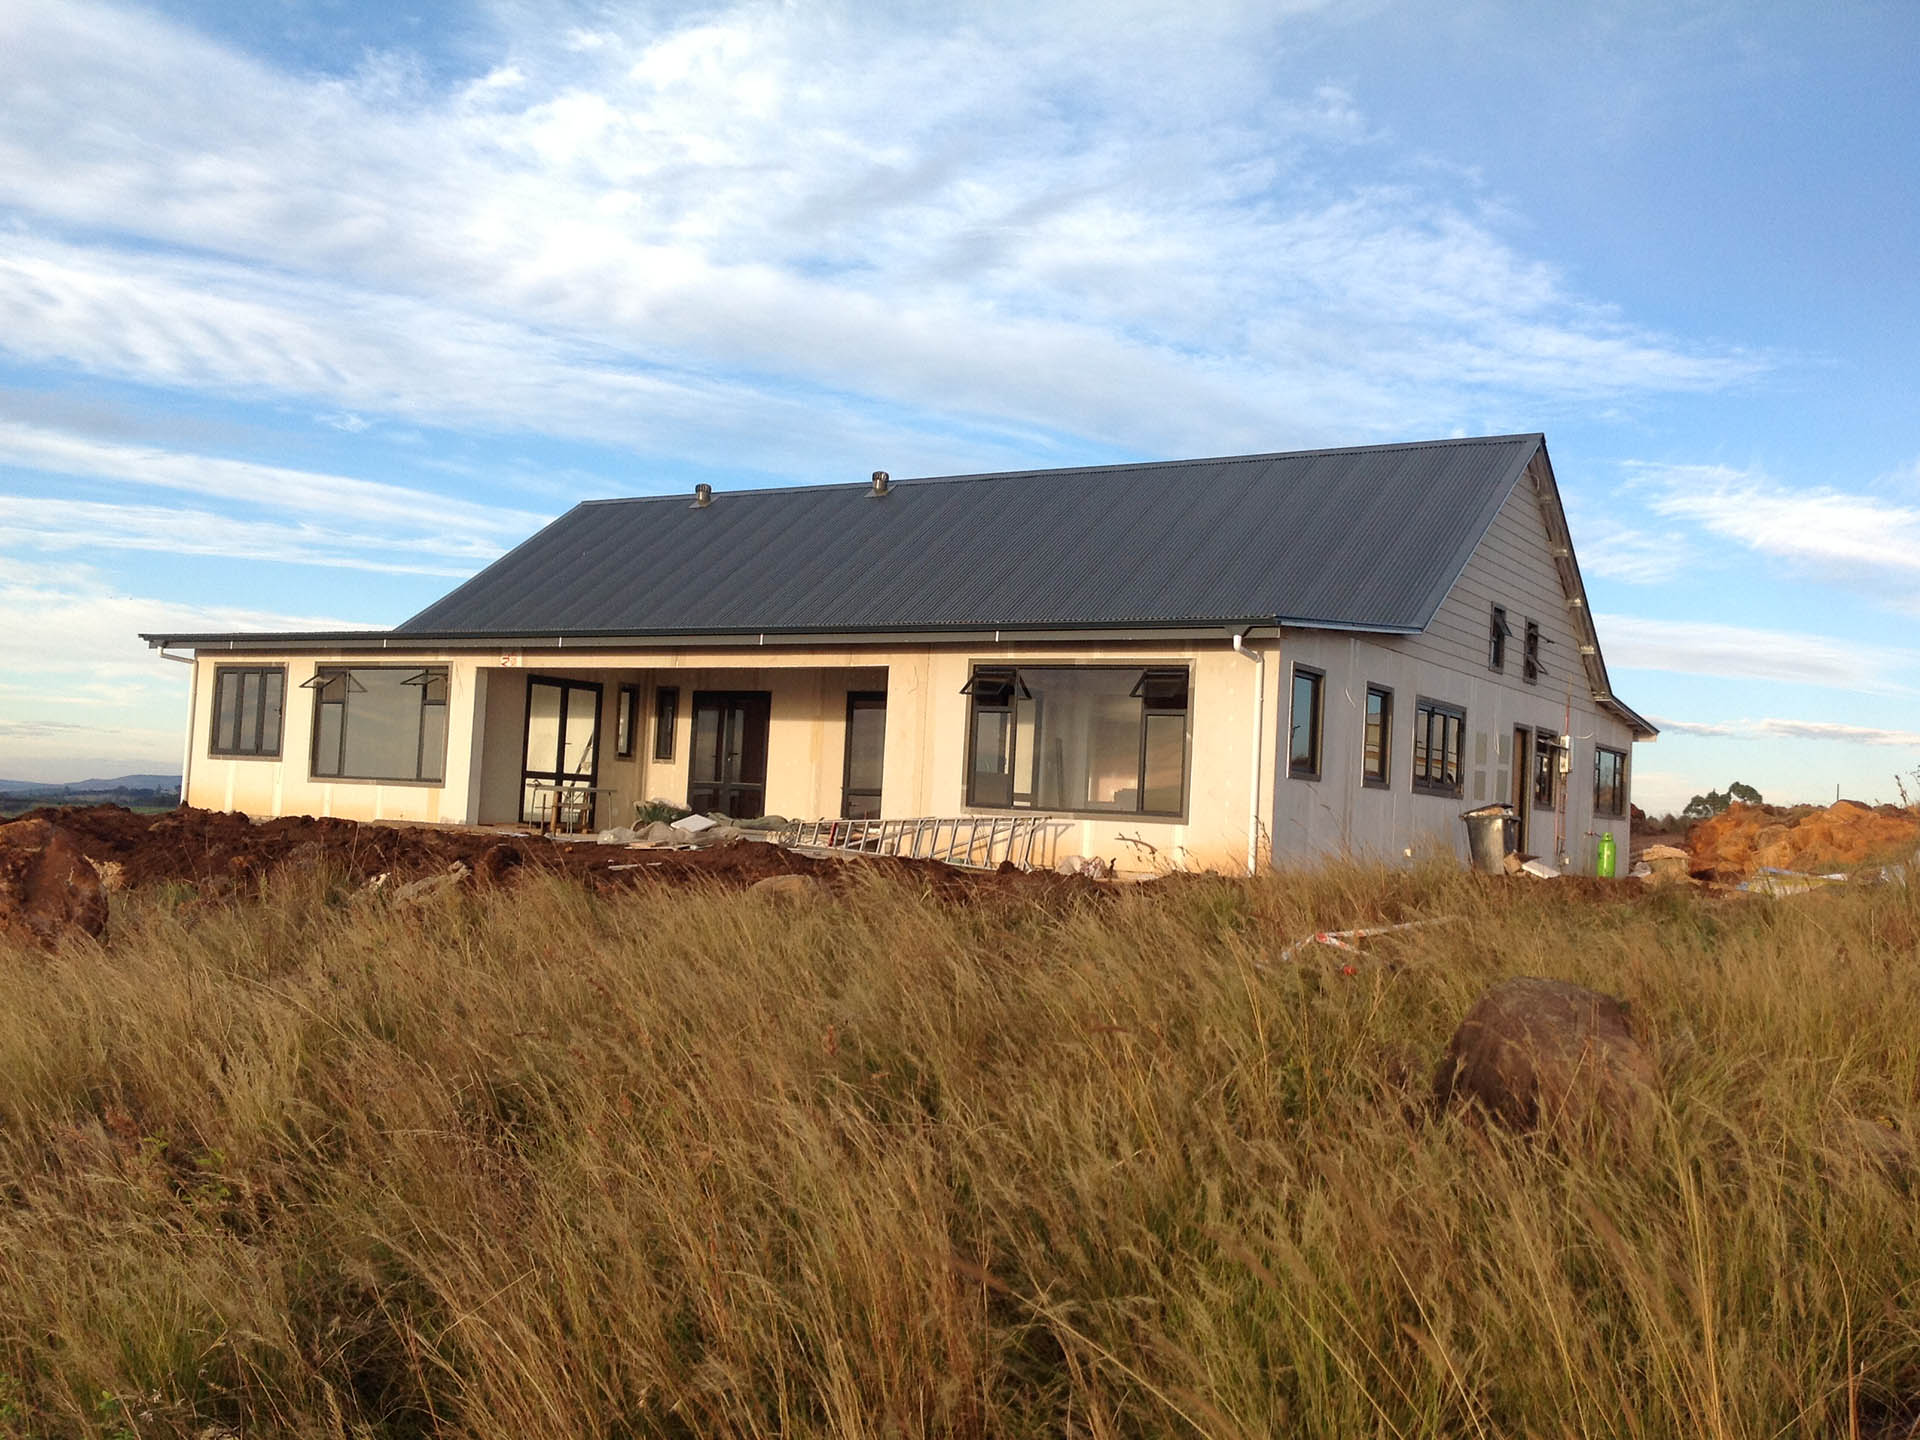 house lechmere-oertel shospec project-light-steel-frame-building-lsf-construction-hilton-pietermaritzburg